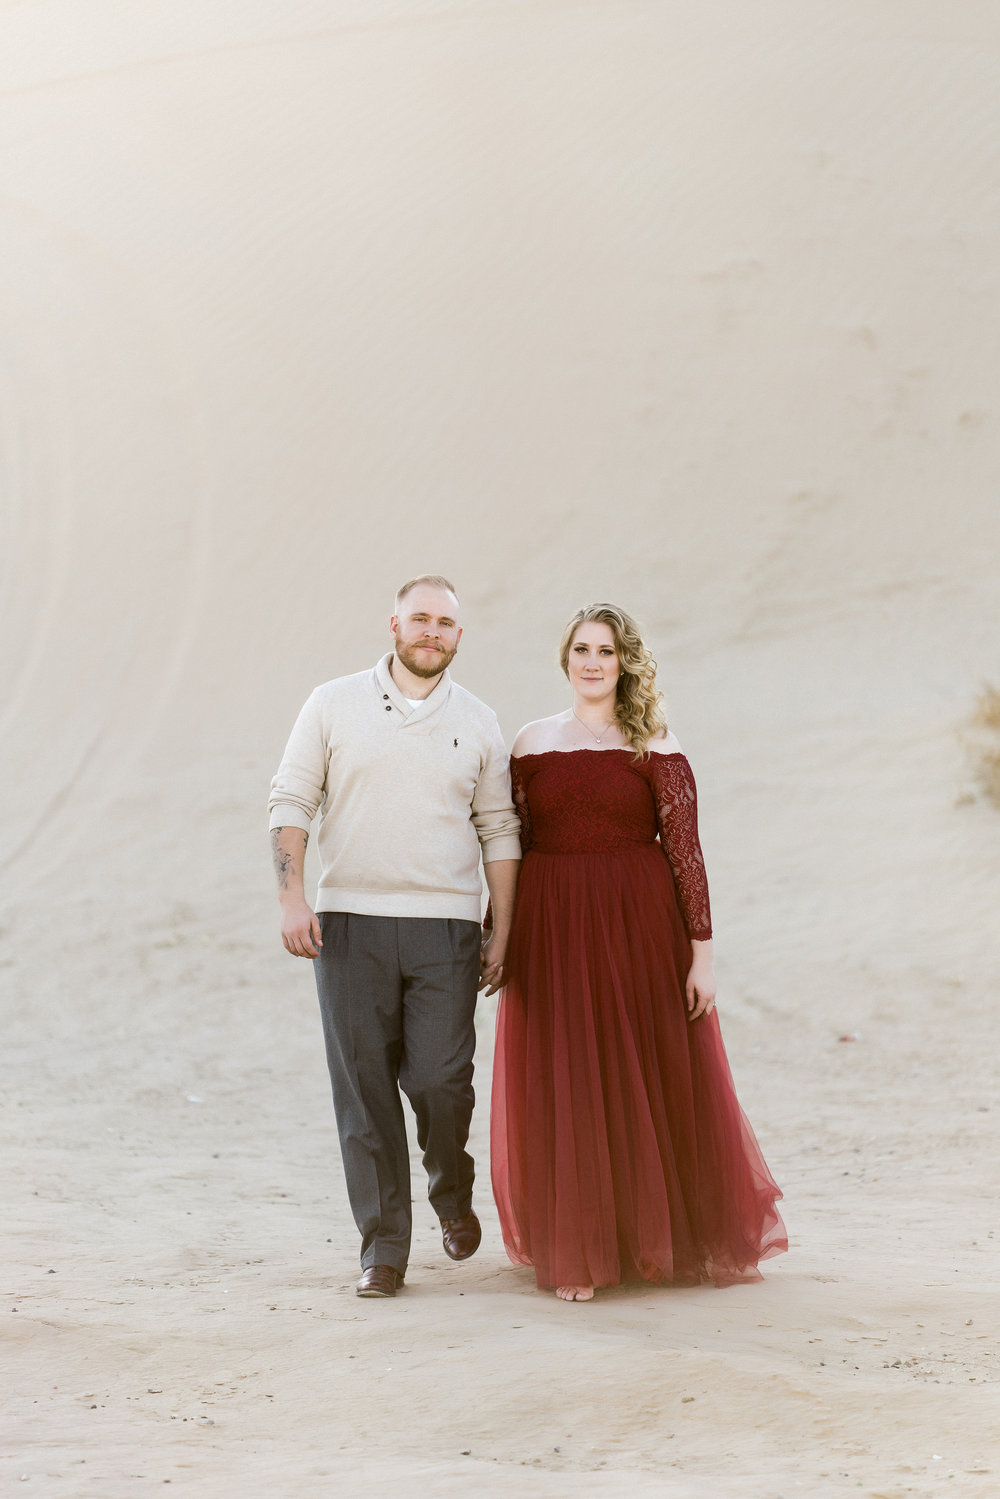 NewMexico-Sand-Dunes-Engagement-Carissa-and-Ben-1085.jpg